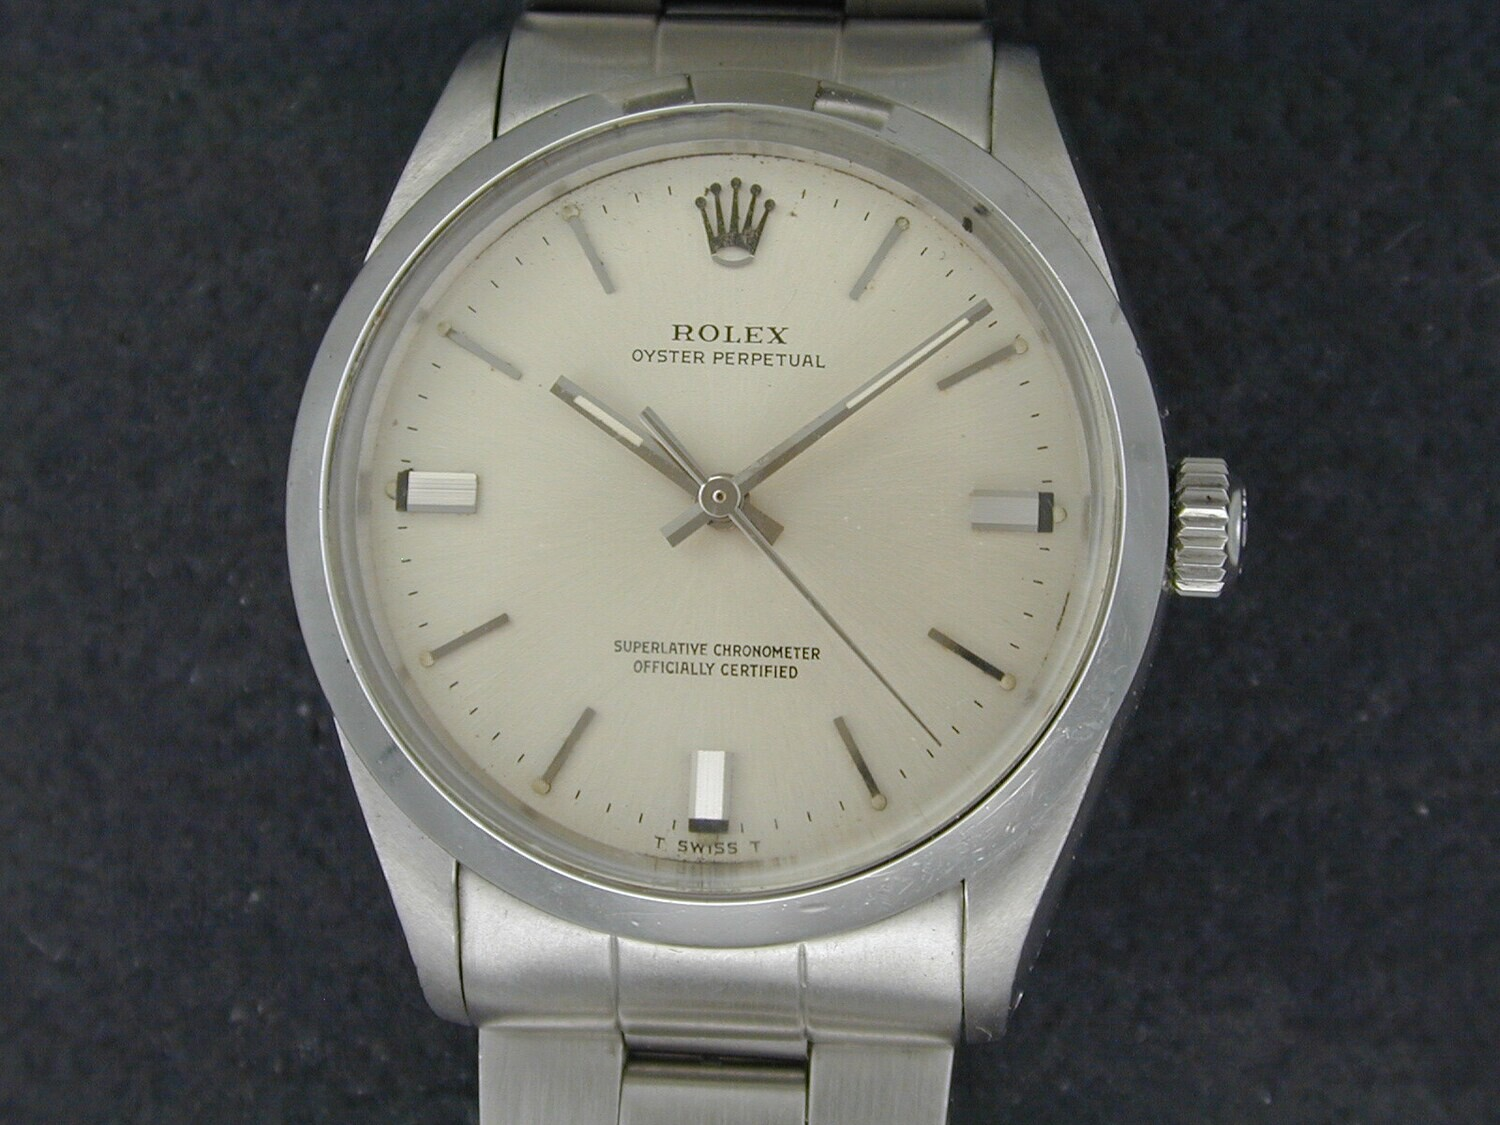 Rolex Oyster Perpetual Ref #1002